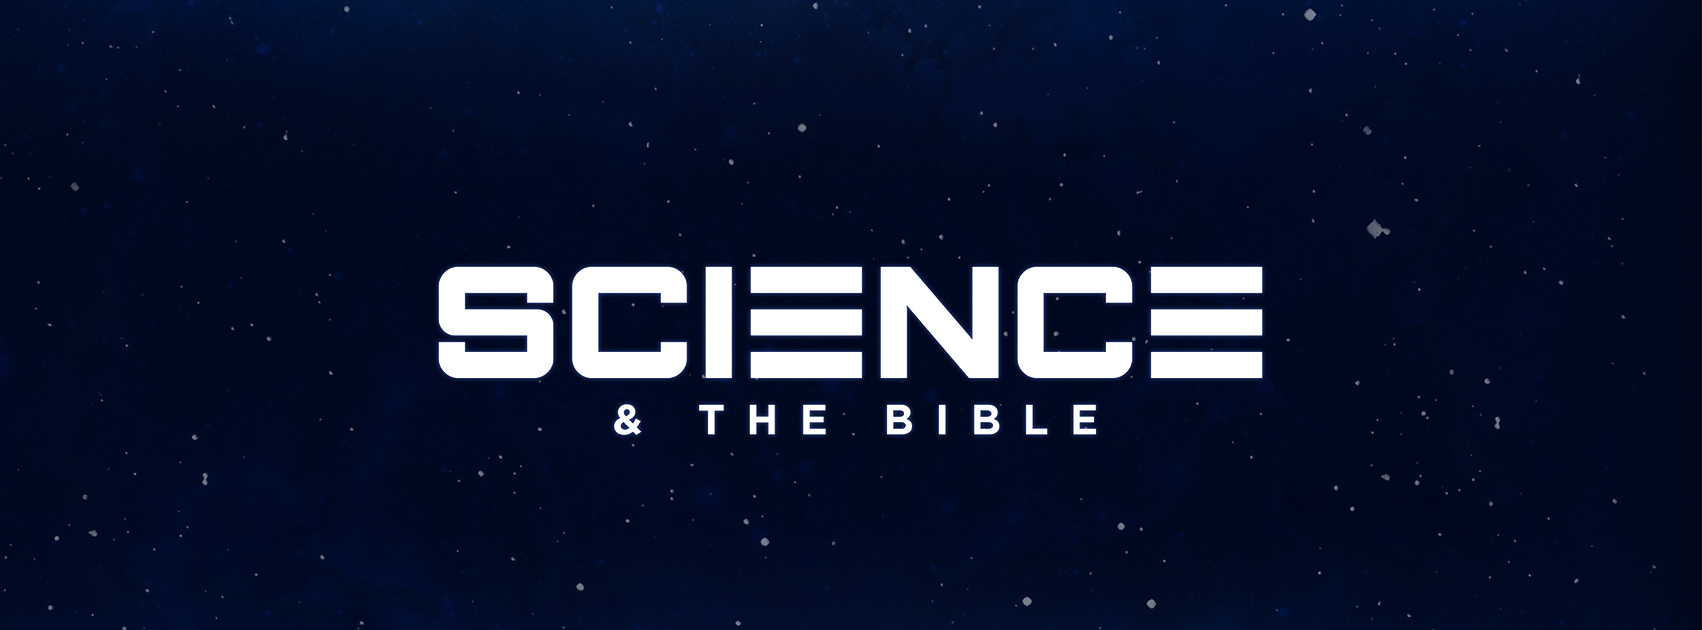 Science and the Bible FB Cover Photo.jpg